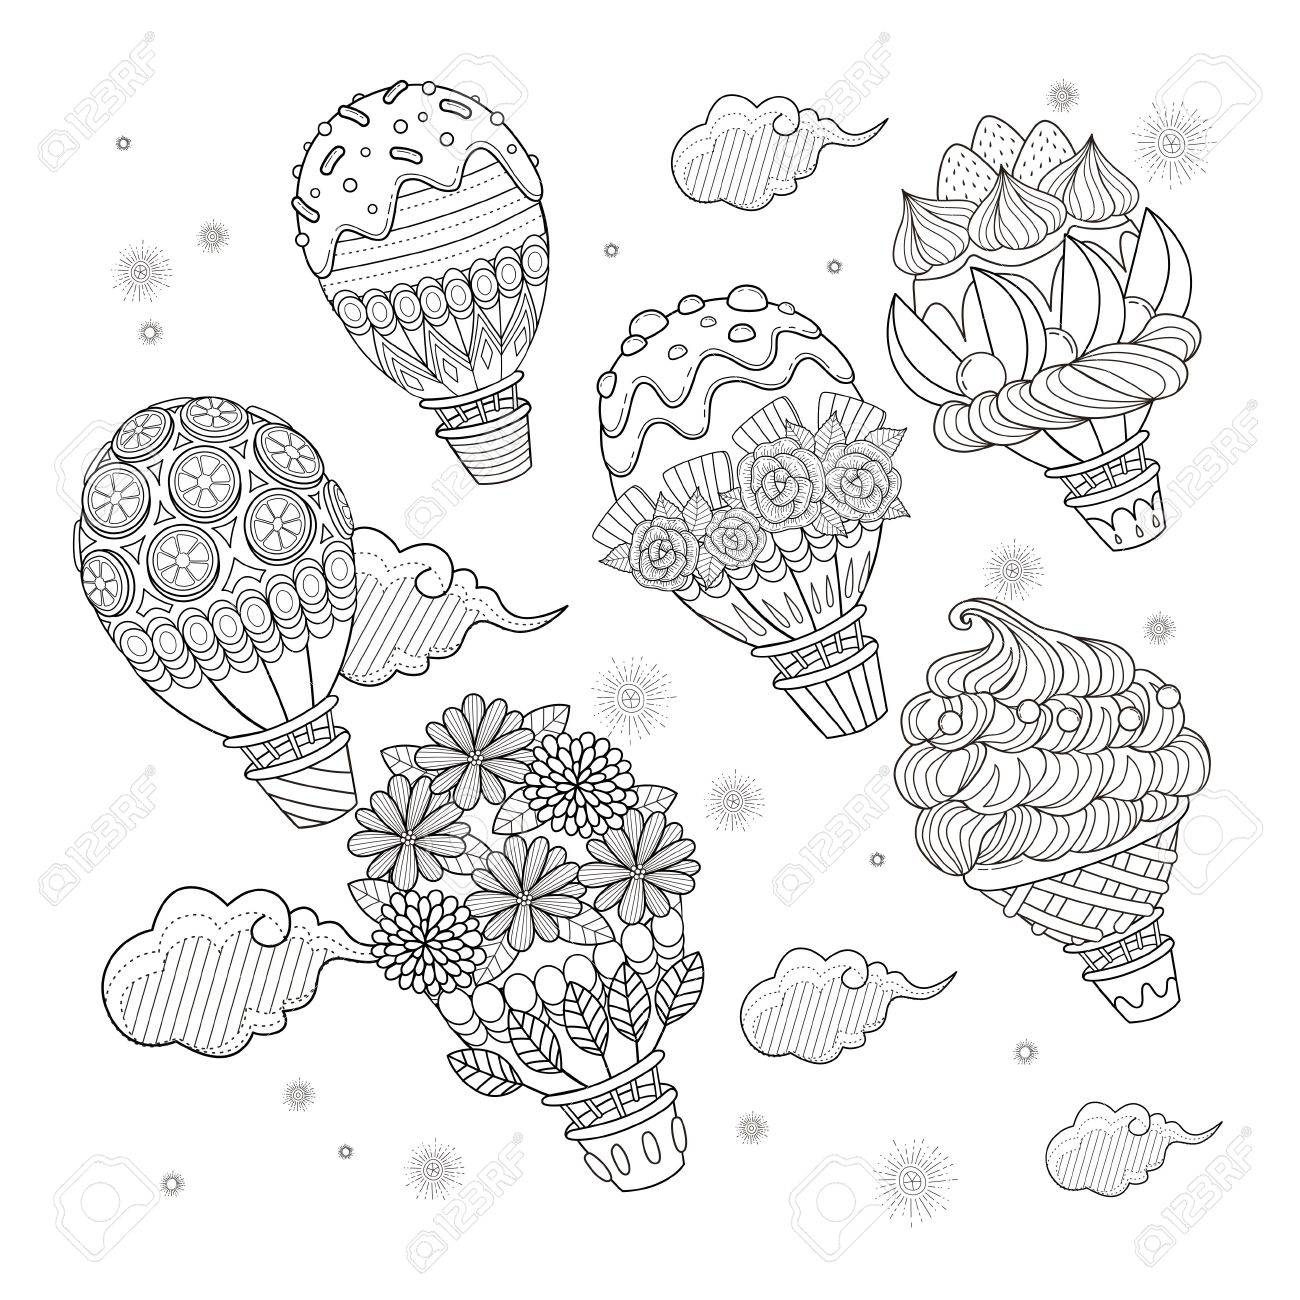 Hot Air Balloon Adult Coloring Page, Lovely Sweets Decoration ...